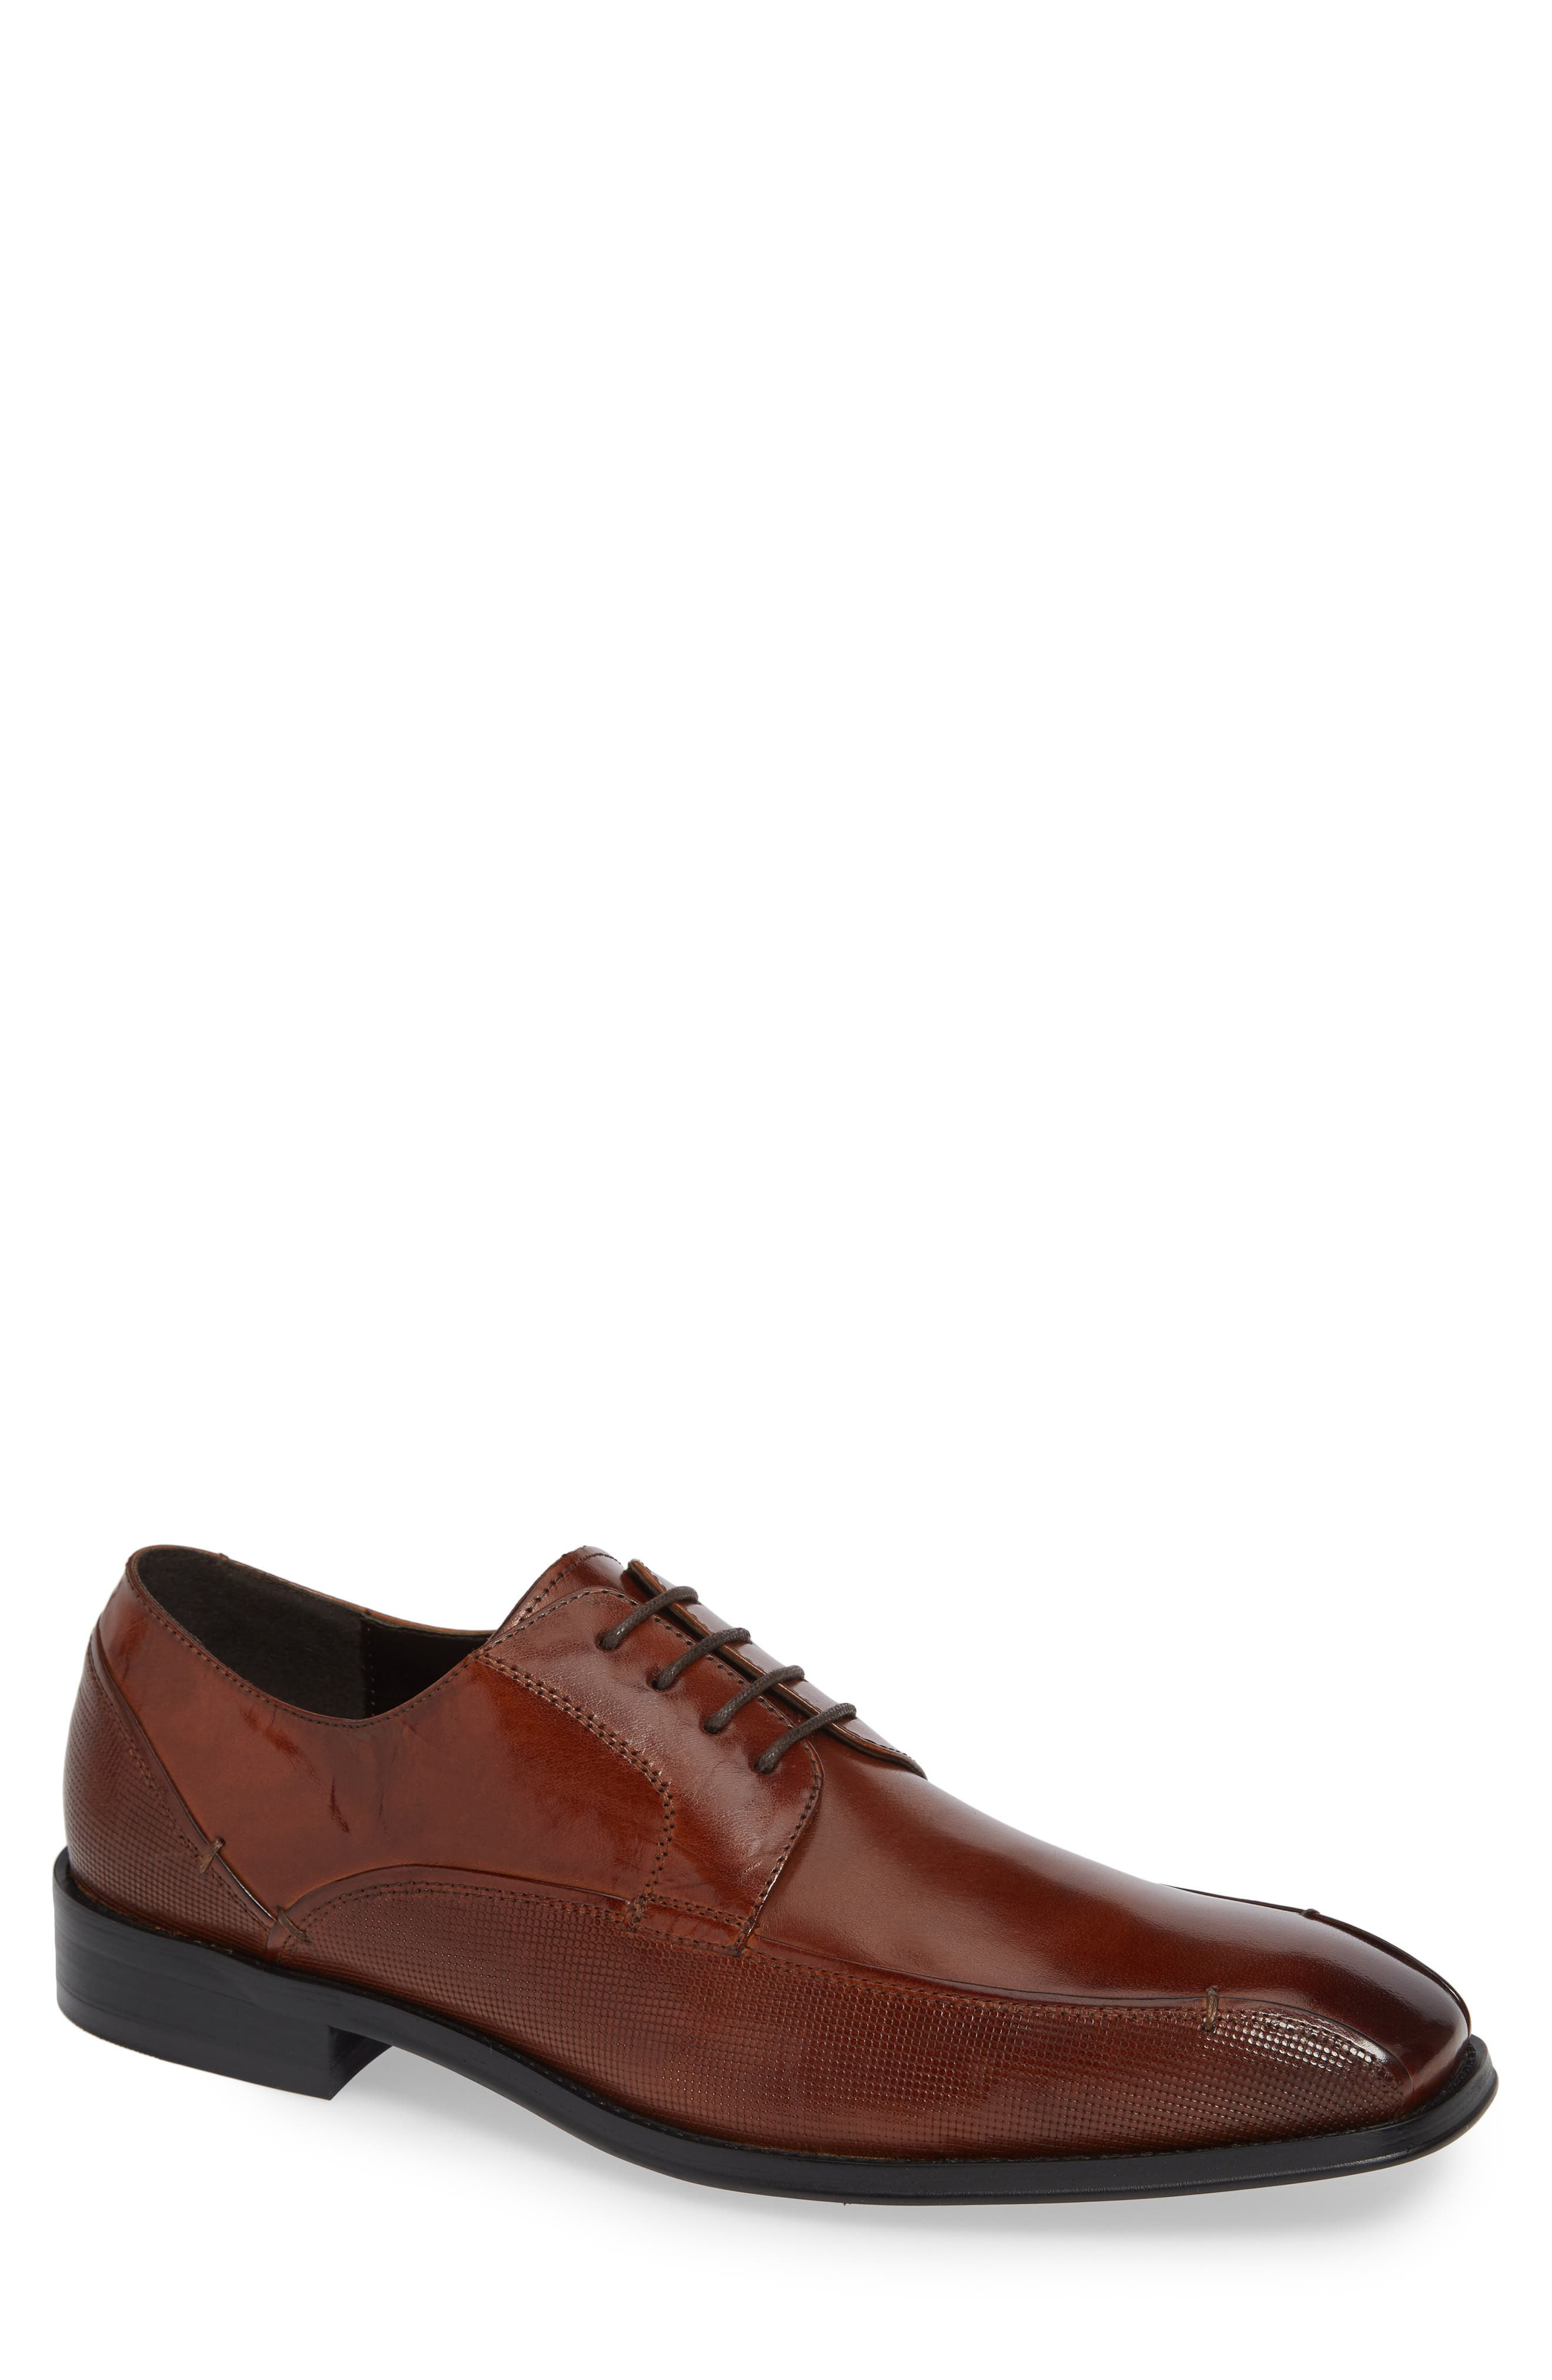 REACTION KENNETH COLE Witter Textured Bike Toe Derby, Main, color, COGNAC LEATHER